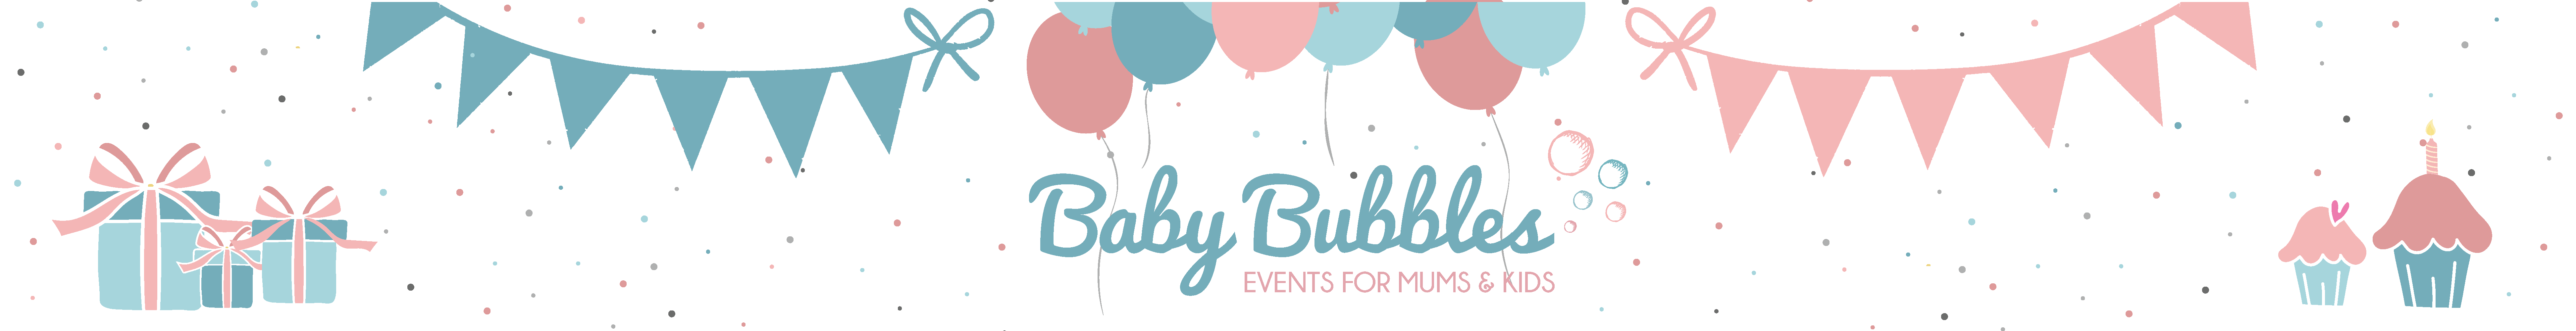 Baby Bubbles Party